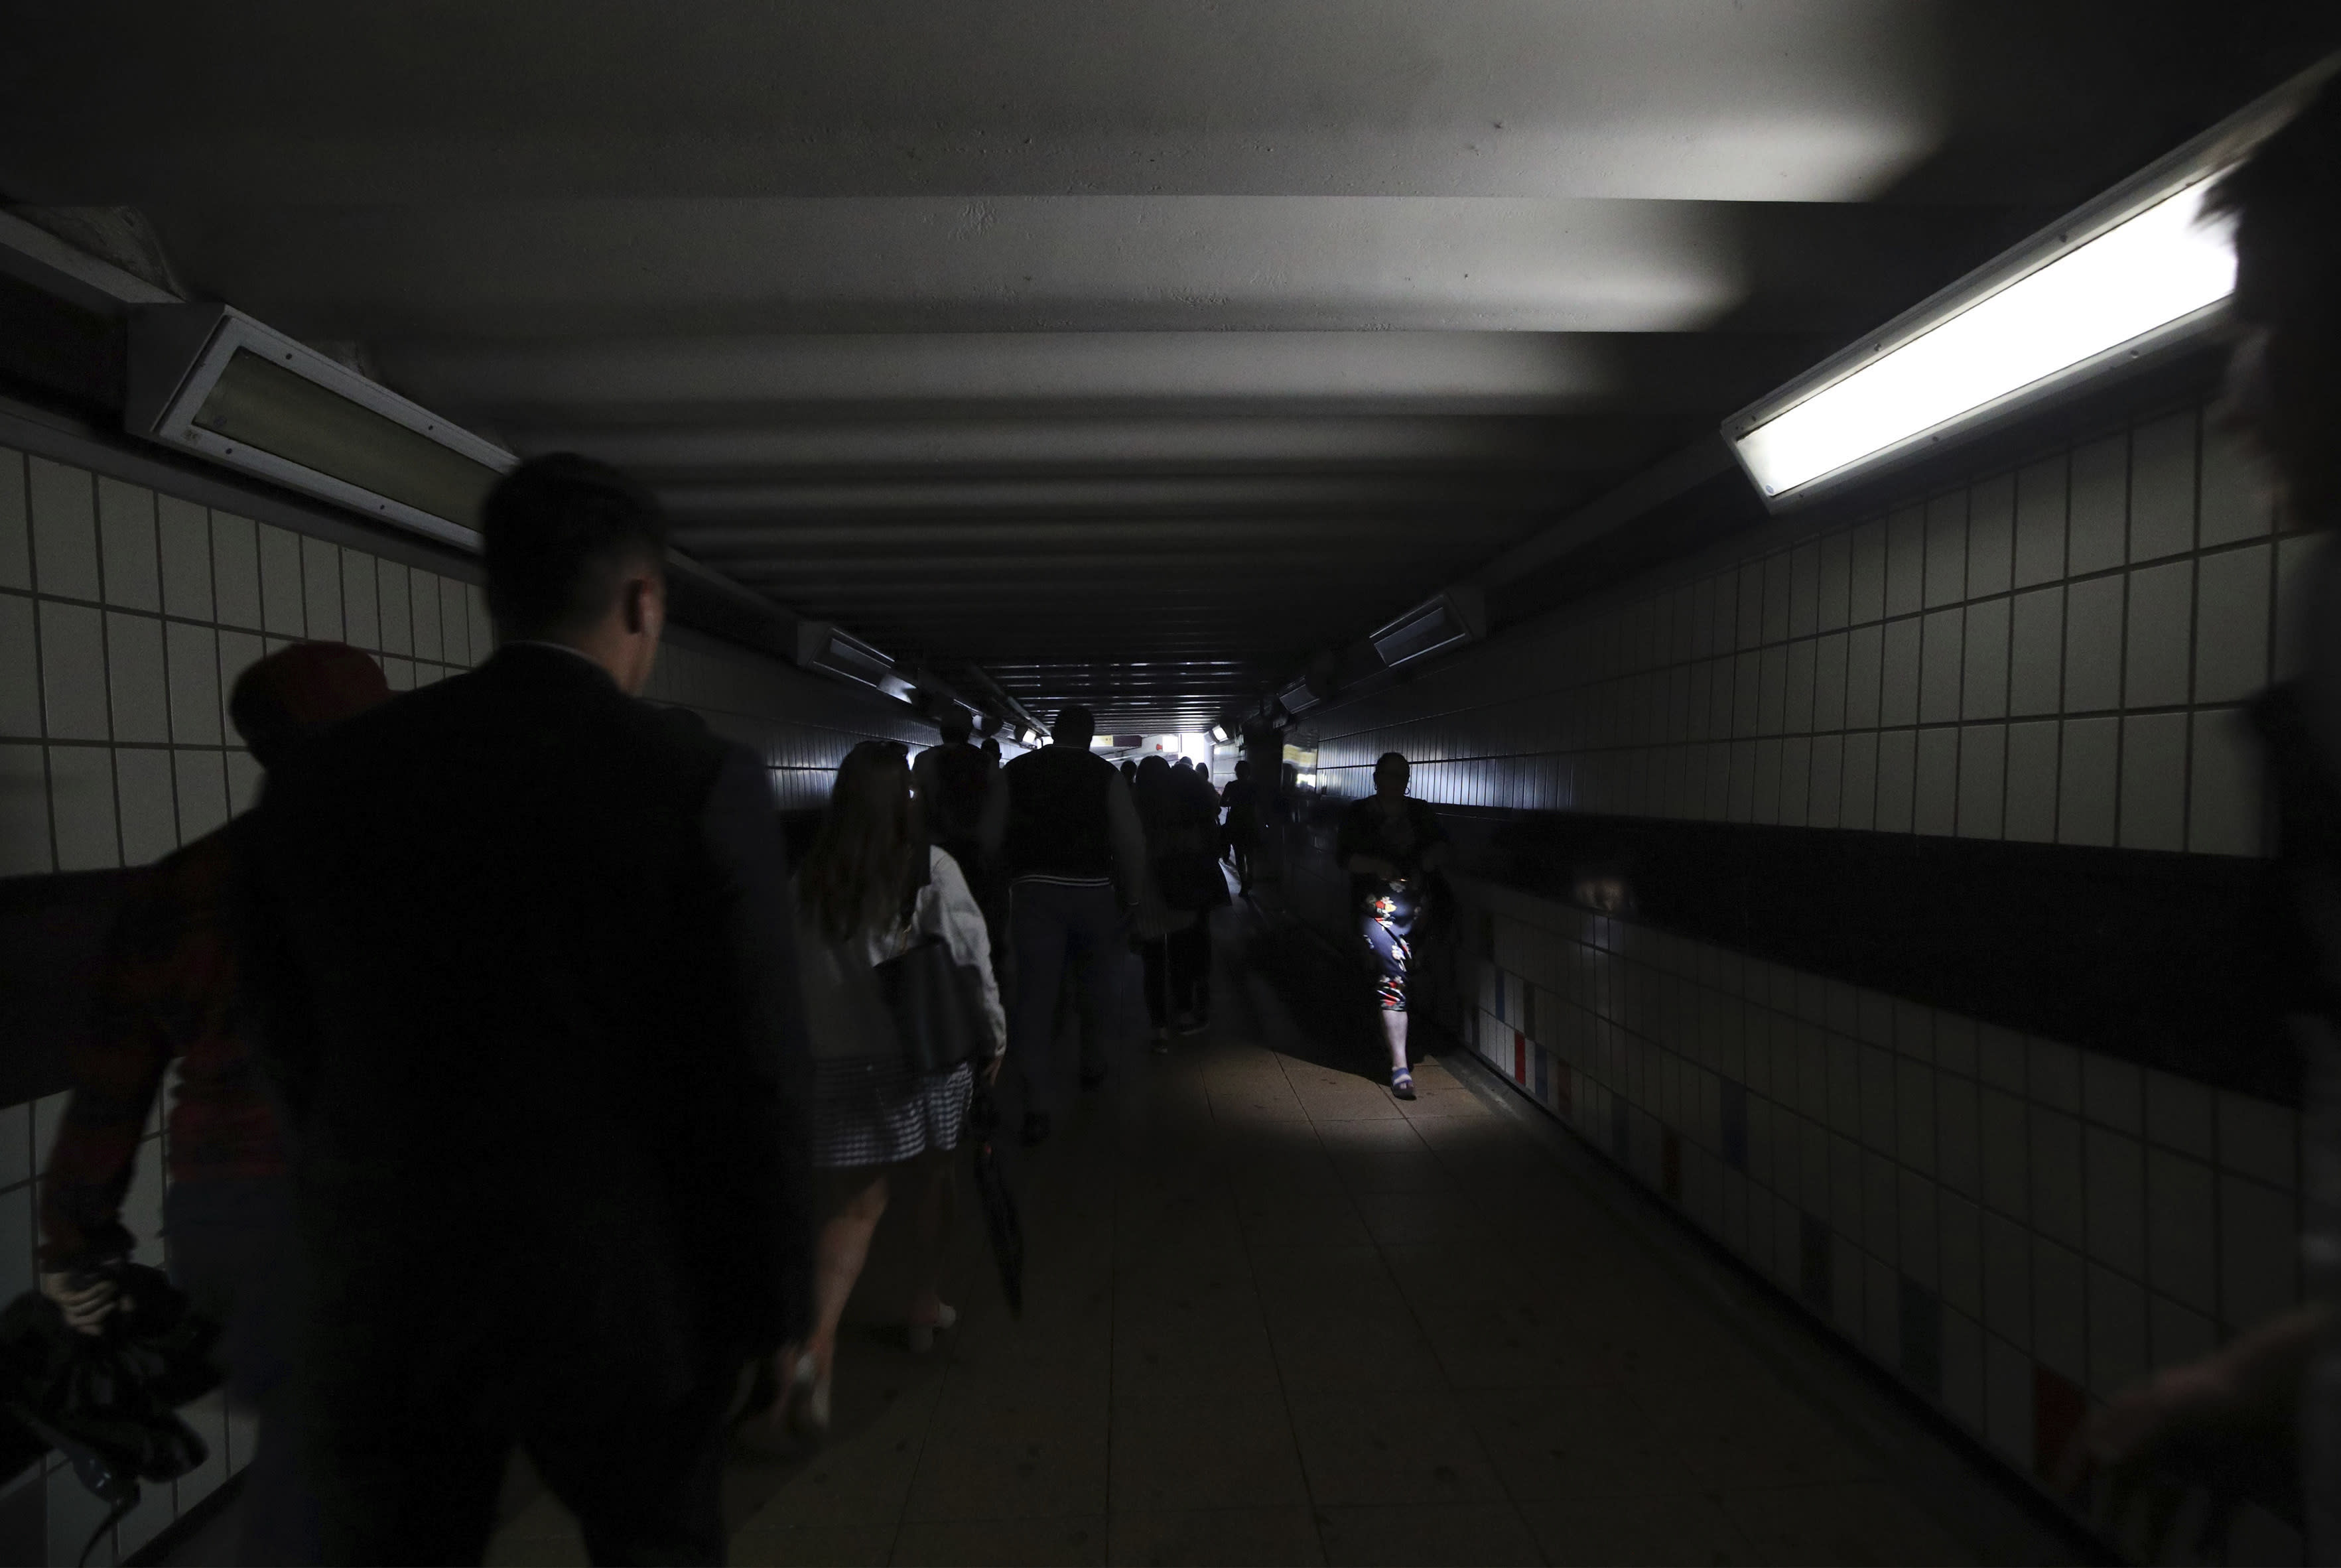 People walk in near darkness at Clapham Junction station during a power cut, in London, Friday, Aug. 9, 2019. London and large chunk of the U.K. were hit with a power cut Friday afternoon that disrupted train travel and snarled rush-hour traffic.U.K. Power Networks, which owns and maintains electricity cables in London and southern England, said a network failure at power supplier National Grid was affecting its customers. (Yui Mok/PA via AP)